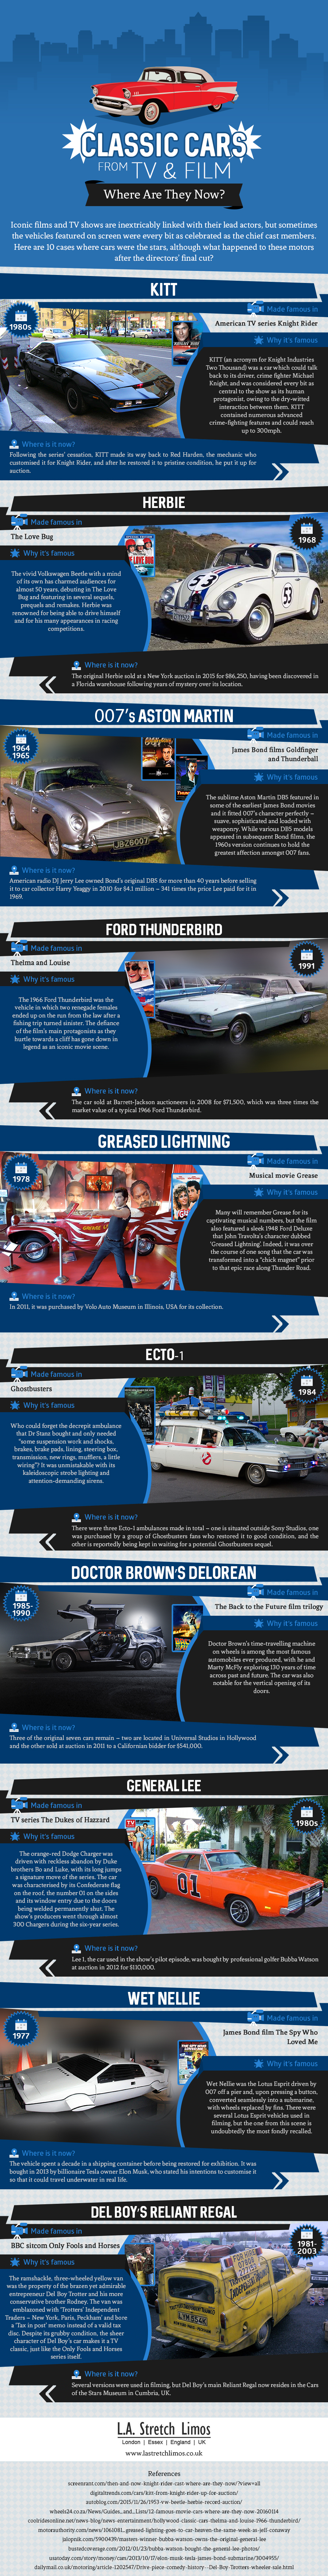 Classic Cars From TV & Film infographic